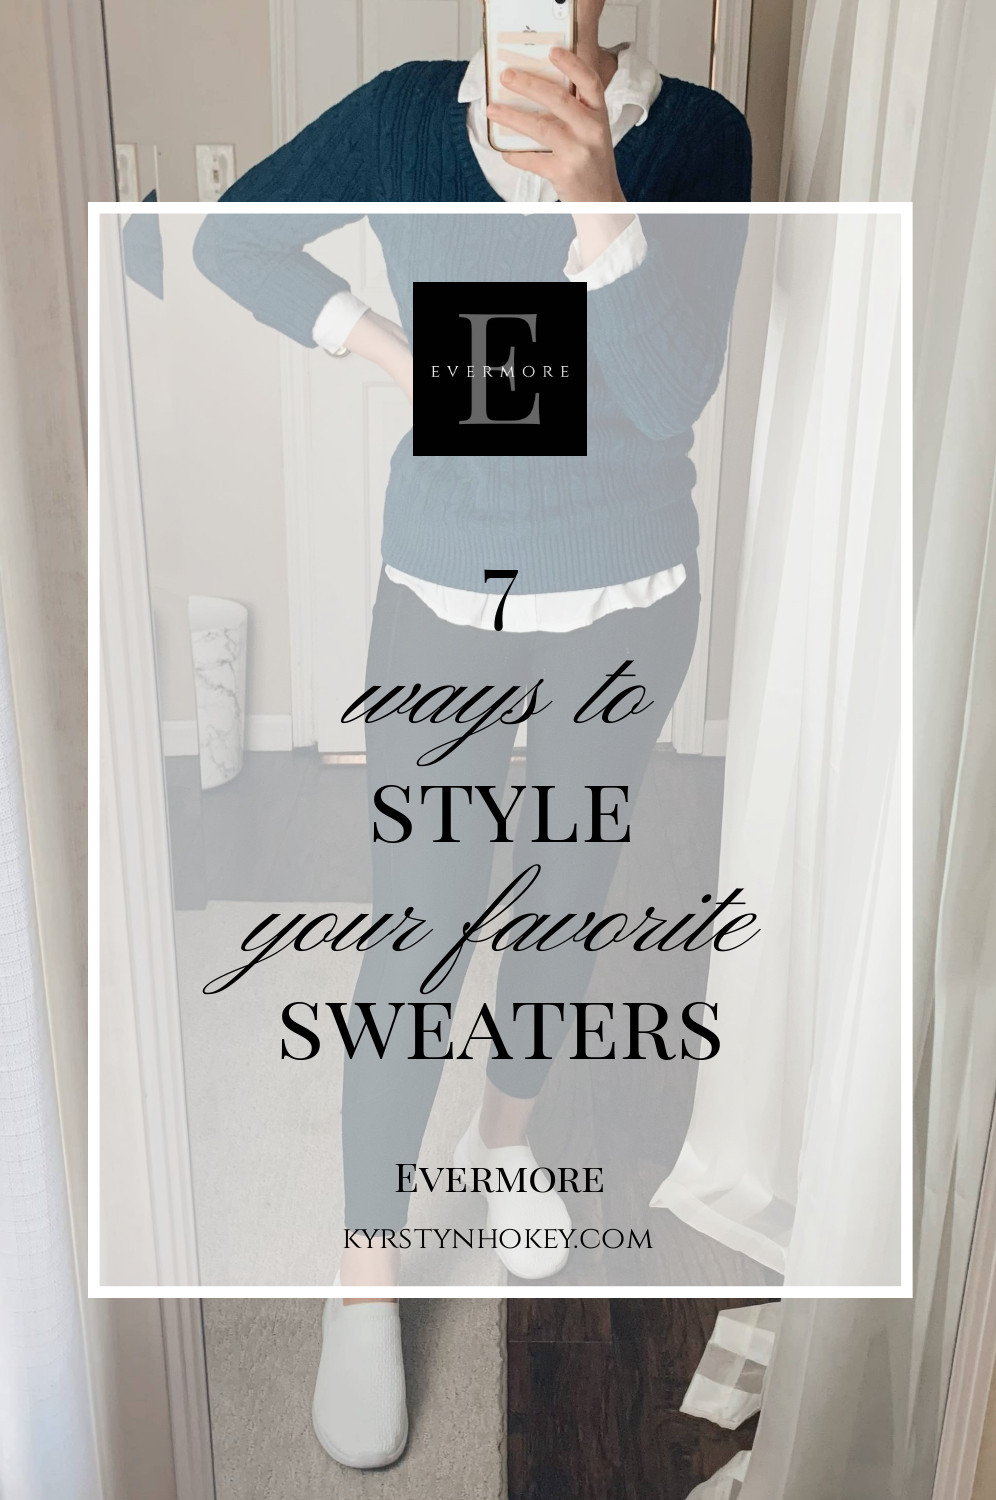 7 ways to style your sweaters, sweater style, sweater, sweaters, winter sweaters, sweater oufit, cute sweater outfit